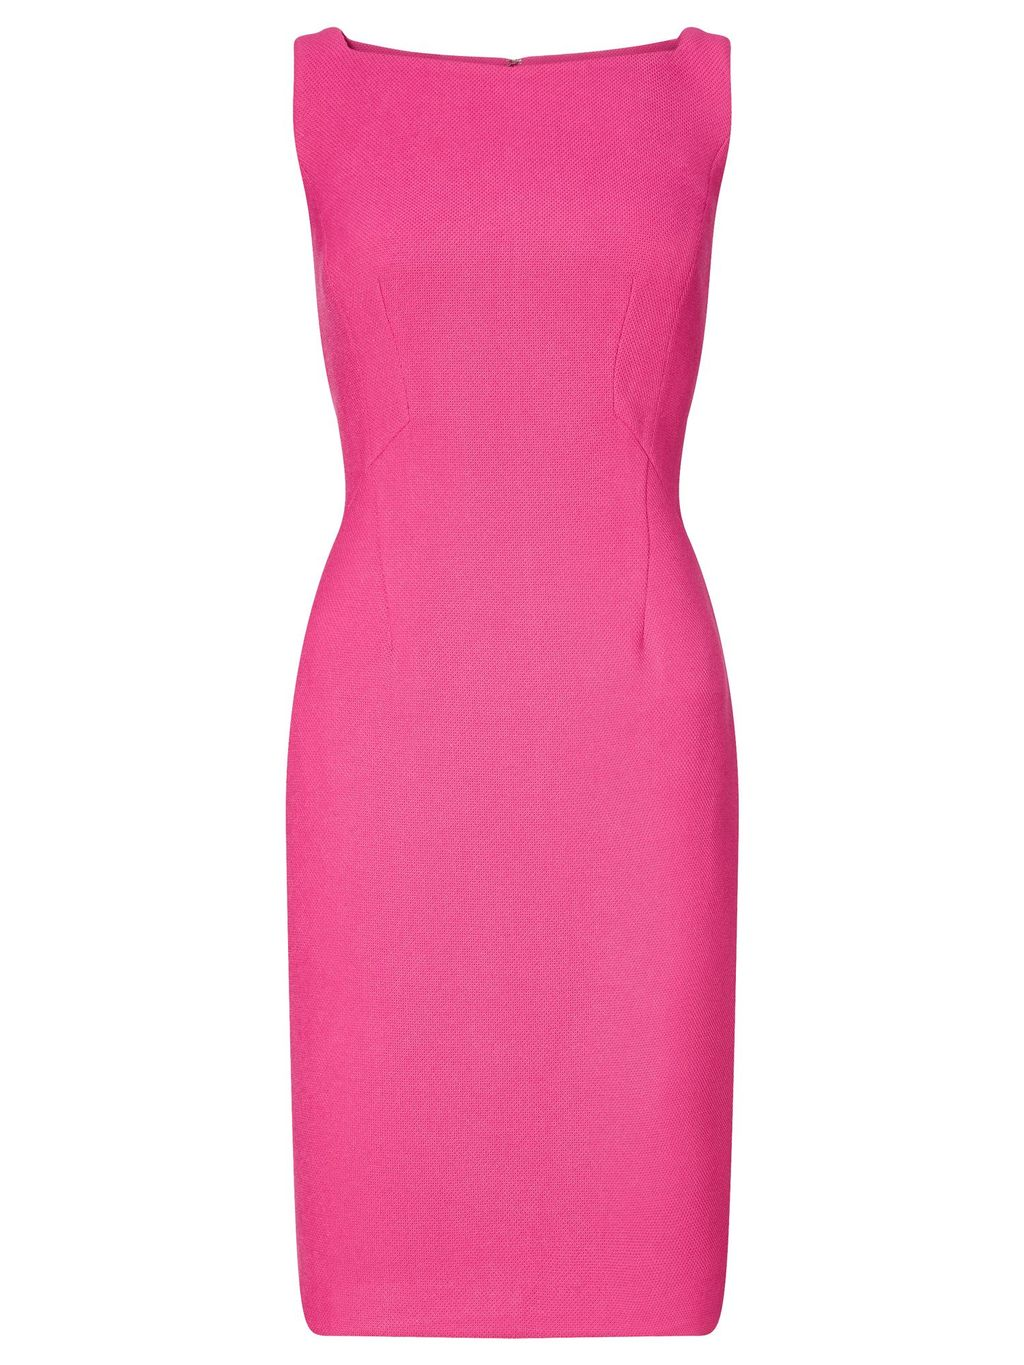 Solid Pique Sheath Dress, Pink - style: shift; fit: tailored/fitted; pattern: plain; sleeve style: sleeveless; predominant colour: hot pink; occasions: evening; length: just above the knee; fibres: polyester/polyamide - stretch; neckline: crew; sleeve length: sleeveless; pattern type: fabric; texture group: other - light to midweight; season: s/s 2016; wardrobe: event